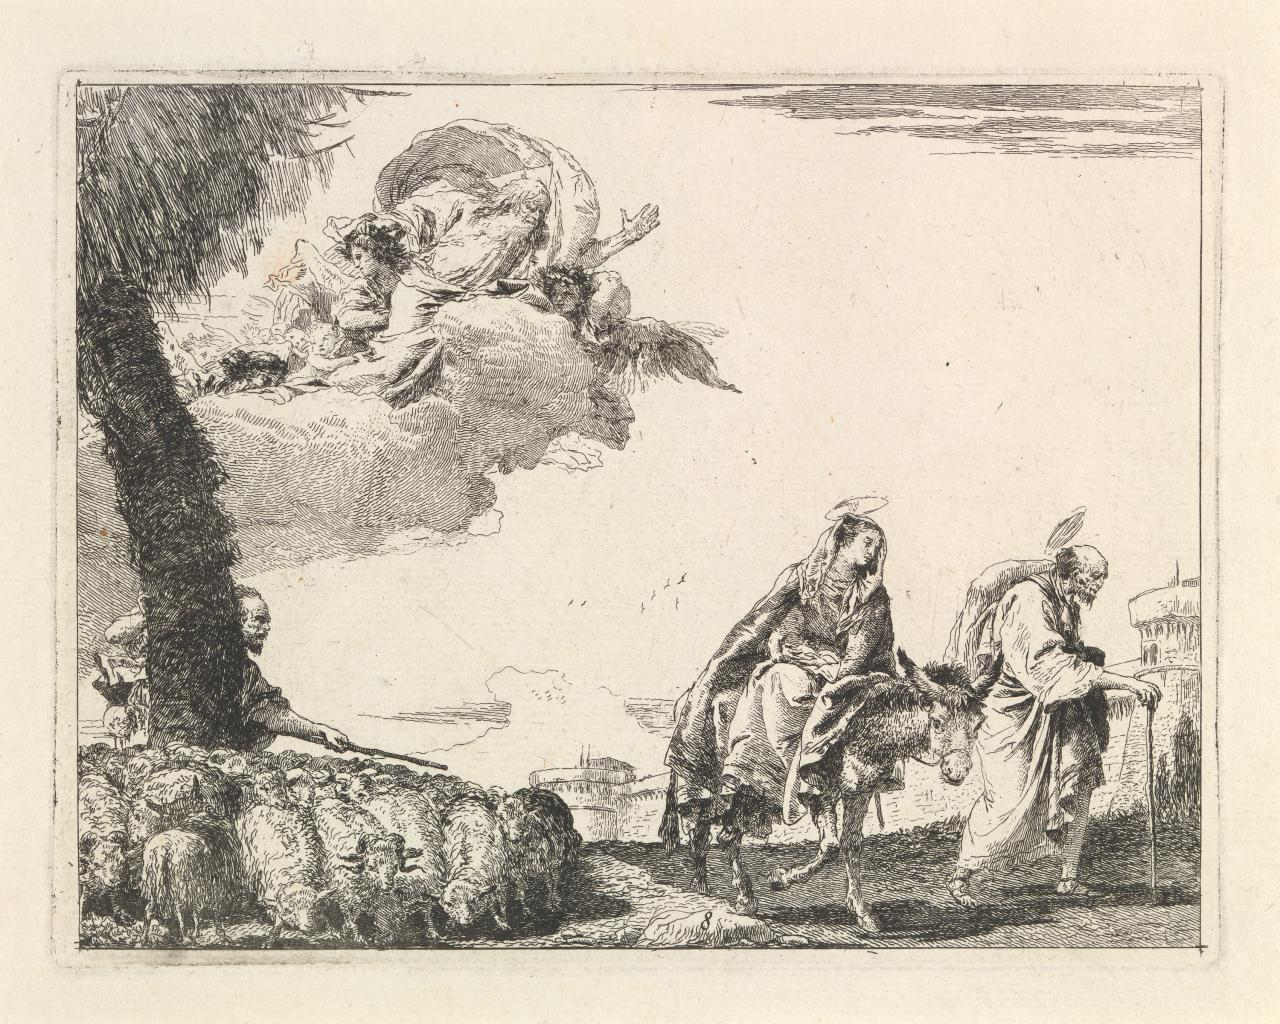 The Flight with the Holy Family at the right (Flight into Egypt)